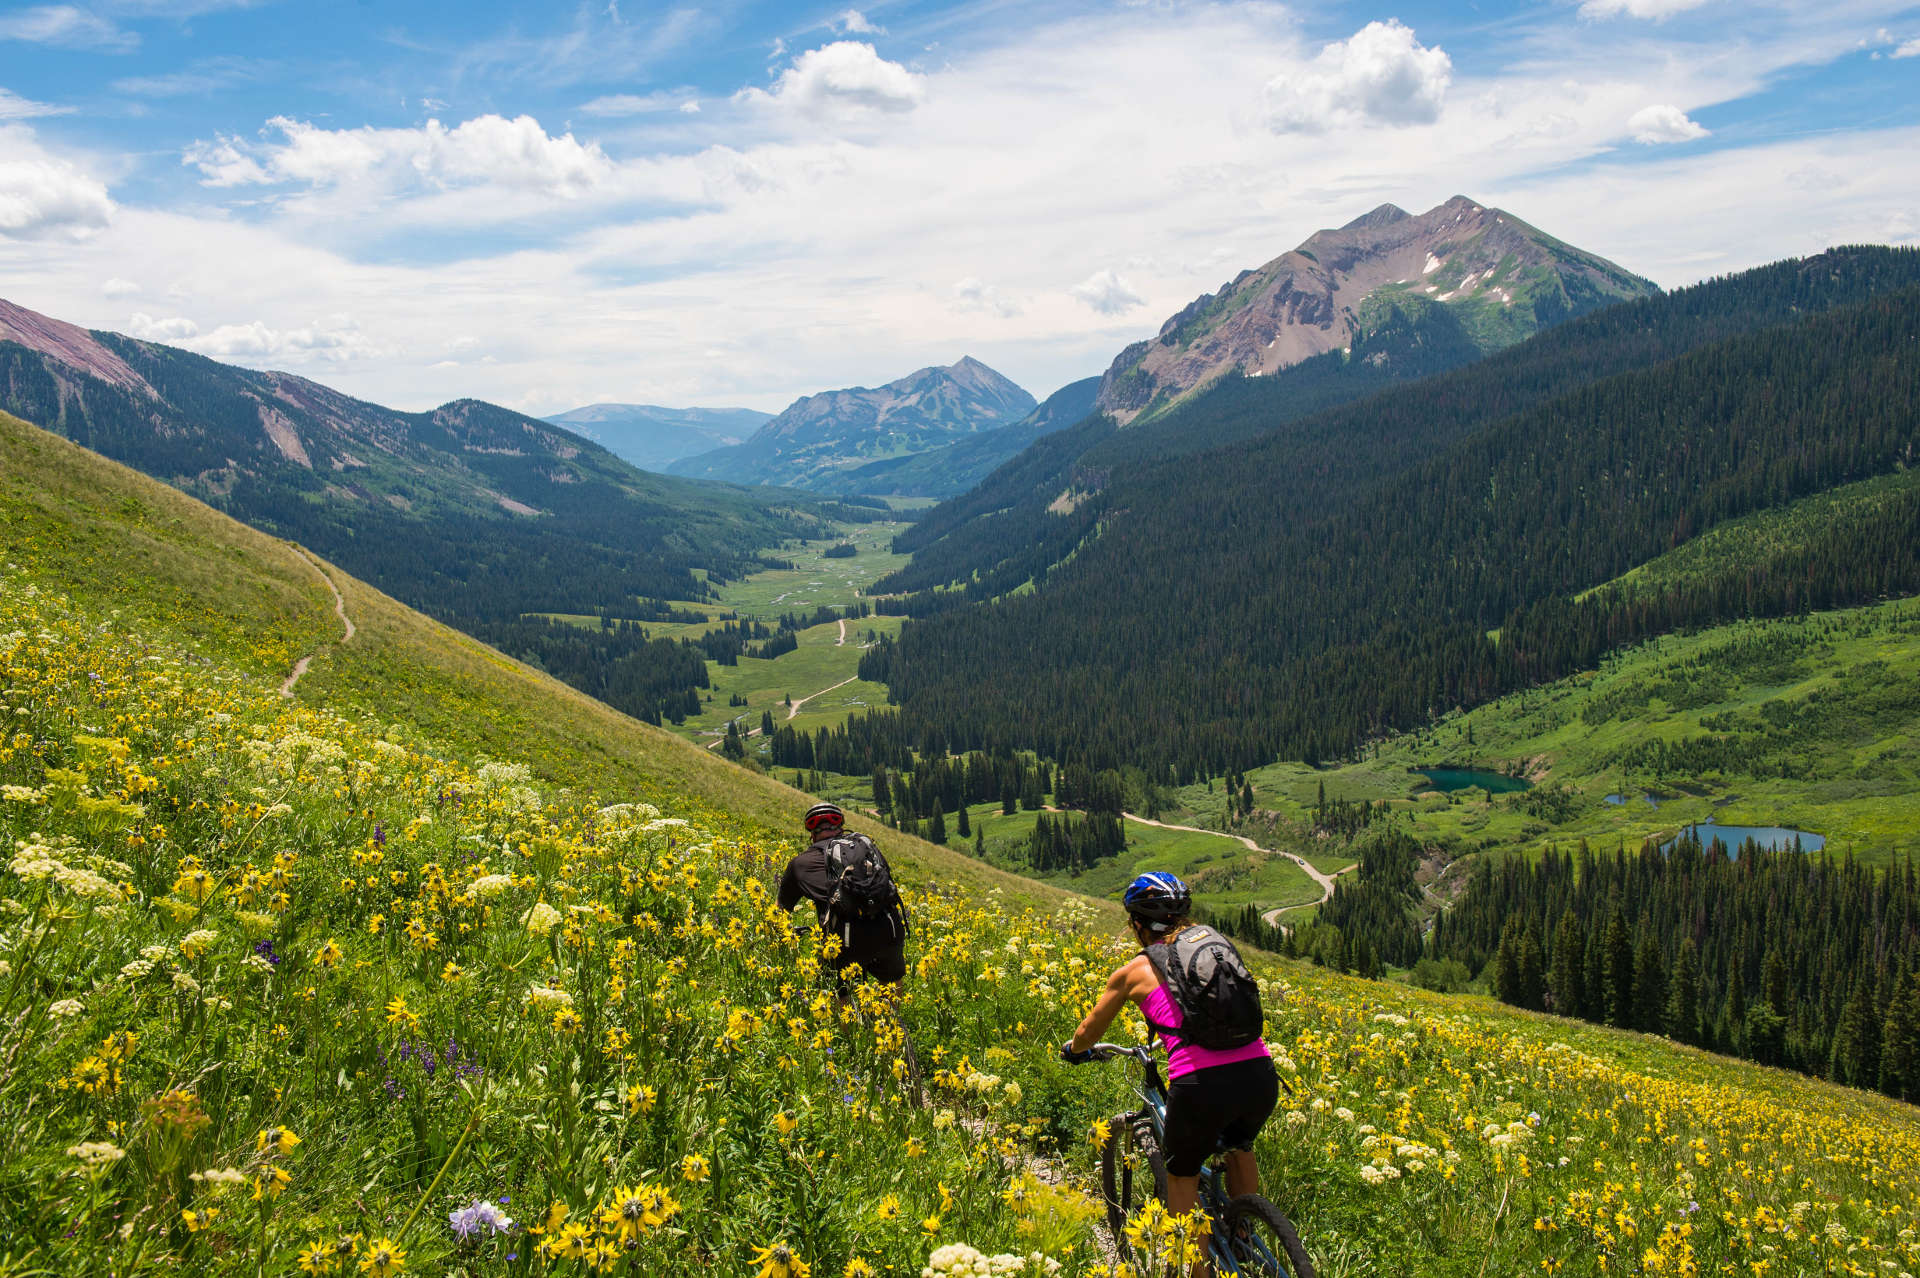 Mountain-Biking-near-Crested-Butte-Credit-Eleven-Experiences-Web-Ready.jpg